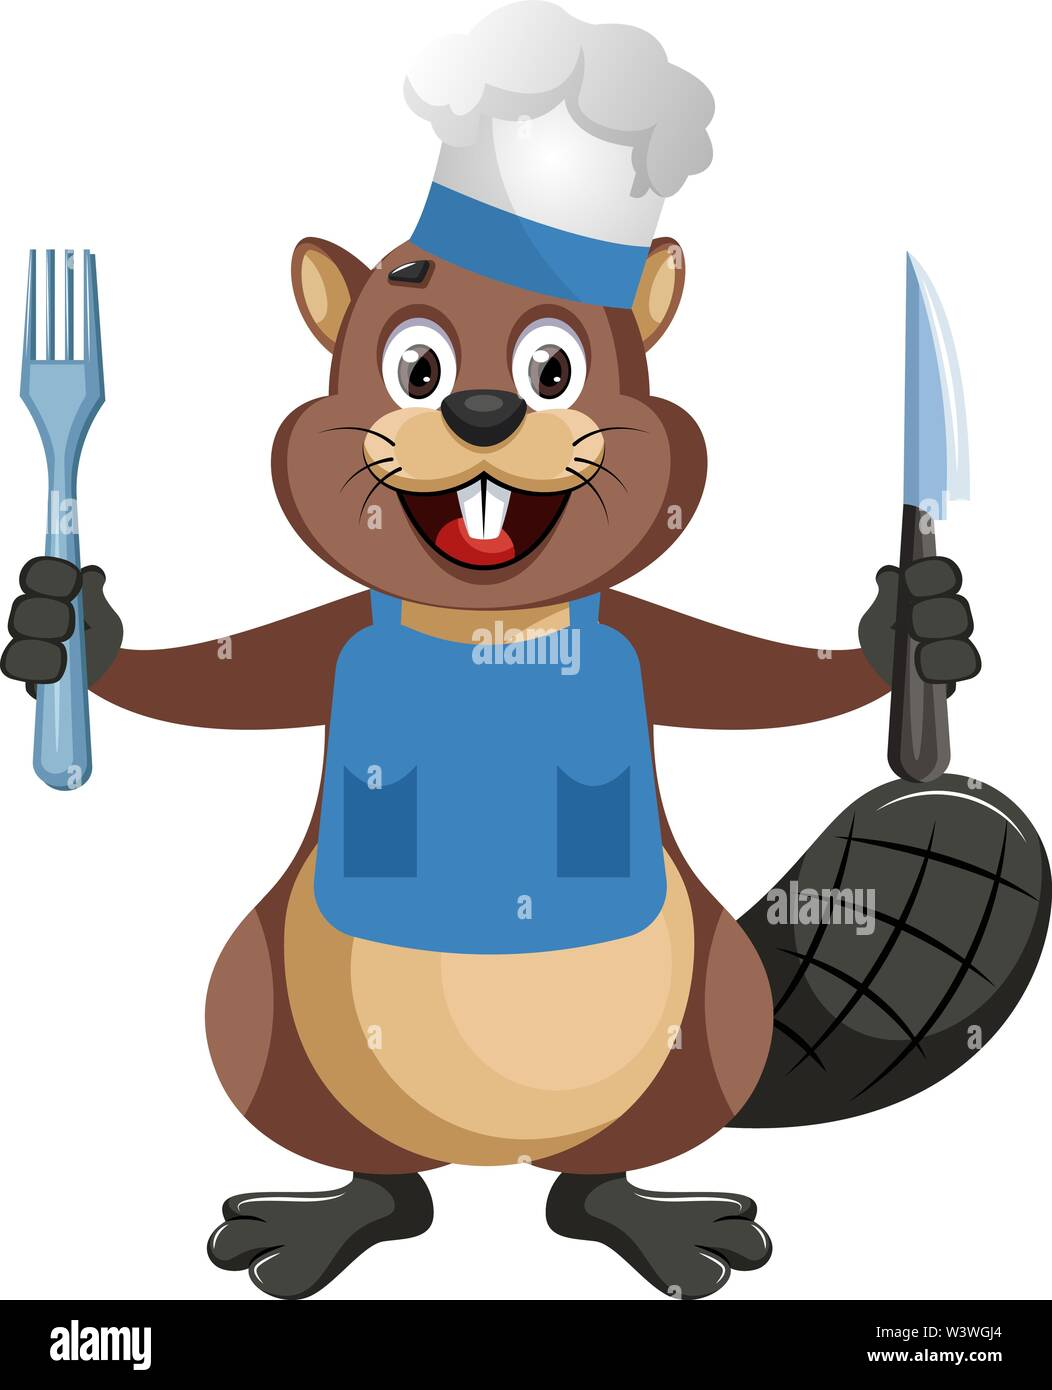 Beaver with fork and knife, illustration, vector on white background. - Stock Image